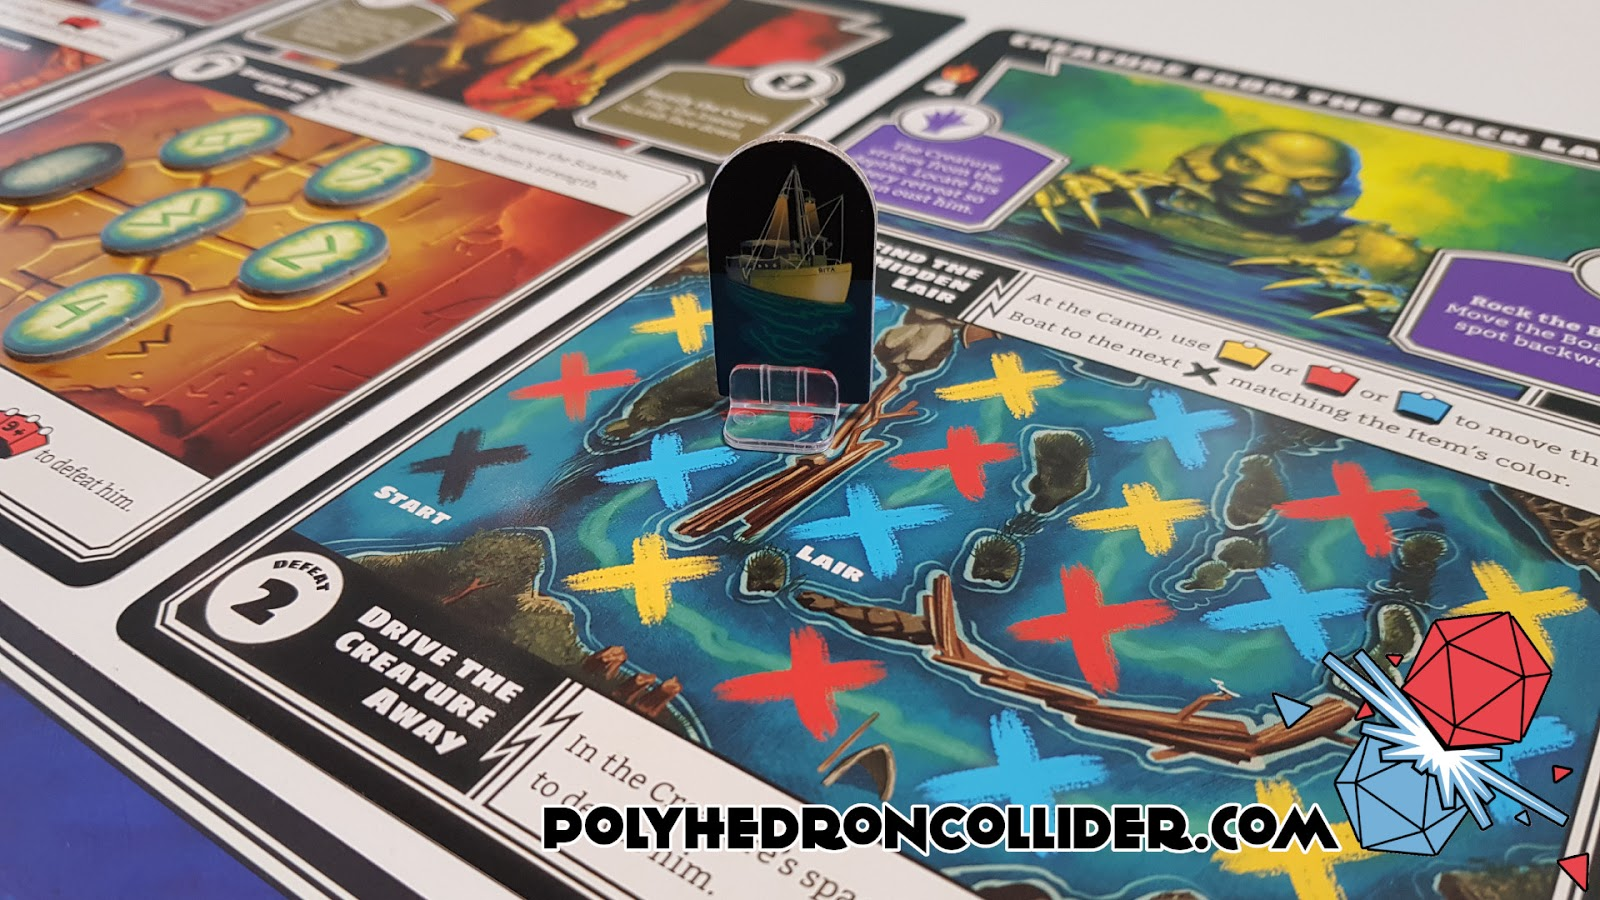 Polyhedron Collider Horrified Board Game Review - The Creature from the Balck Lagoon